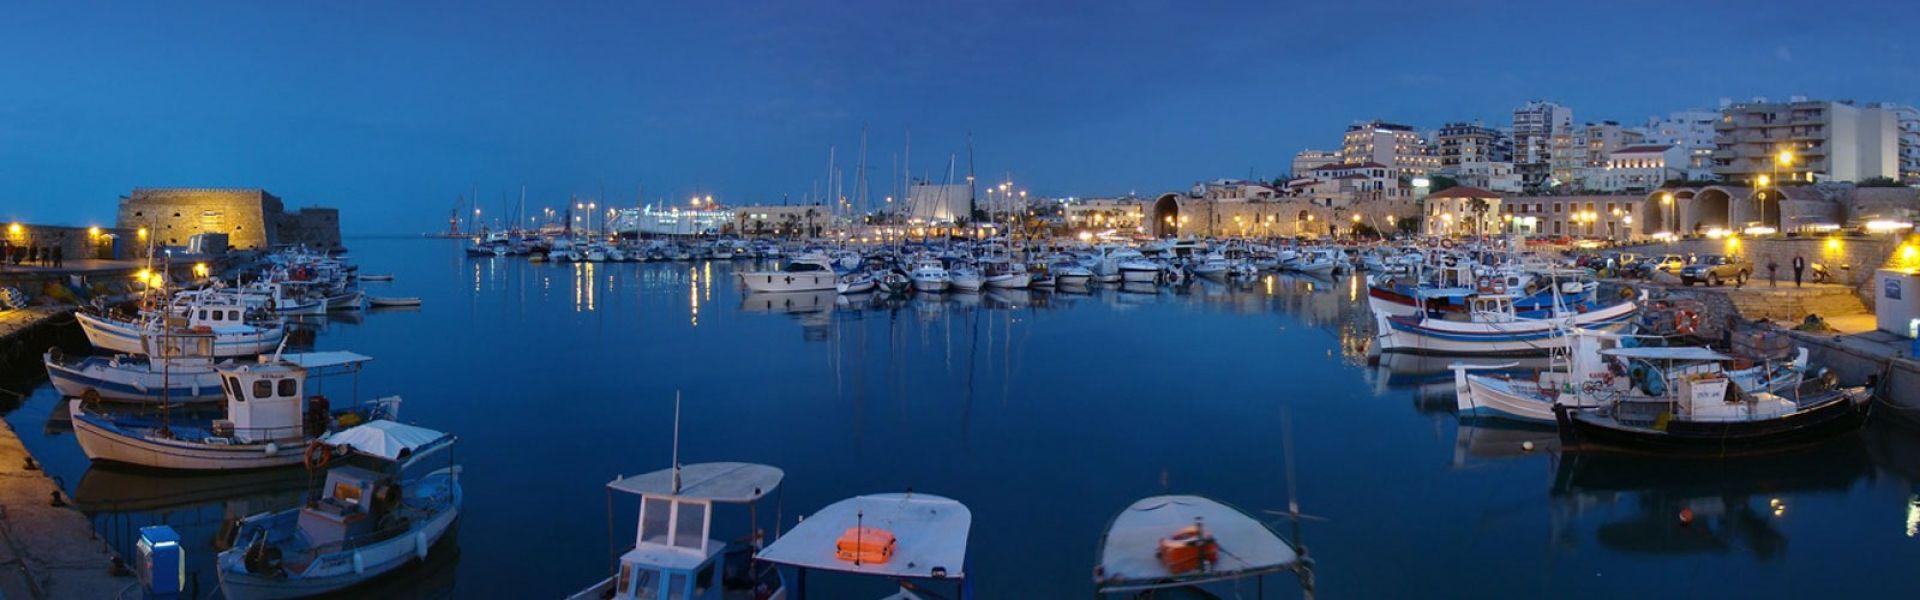 Venetian FOld Harbor - Heraklion cityortress - Heraklion city